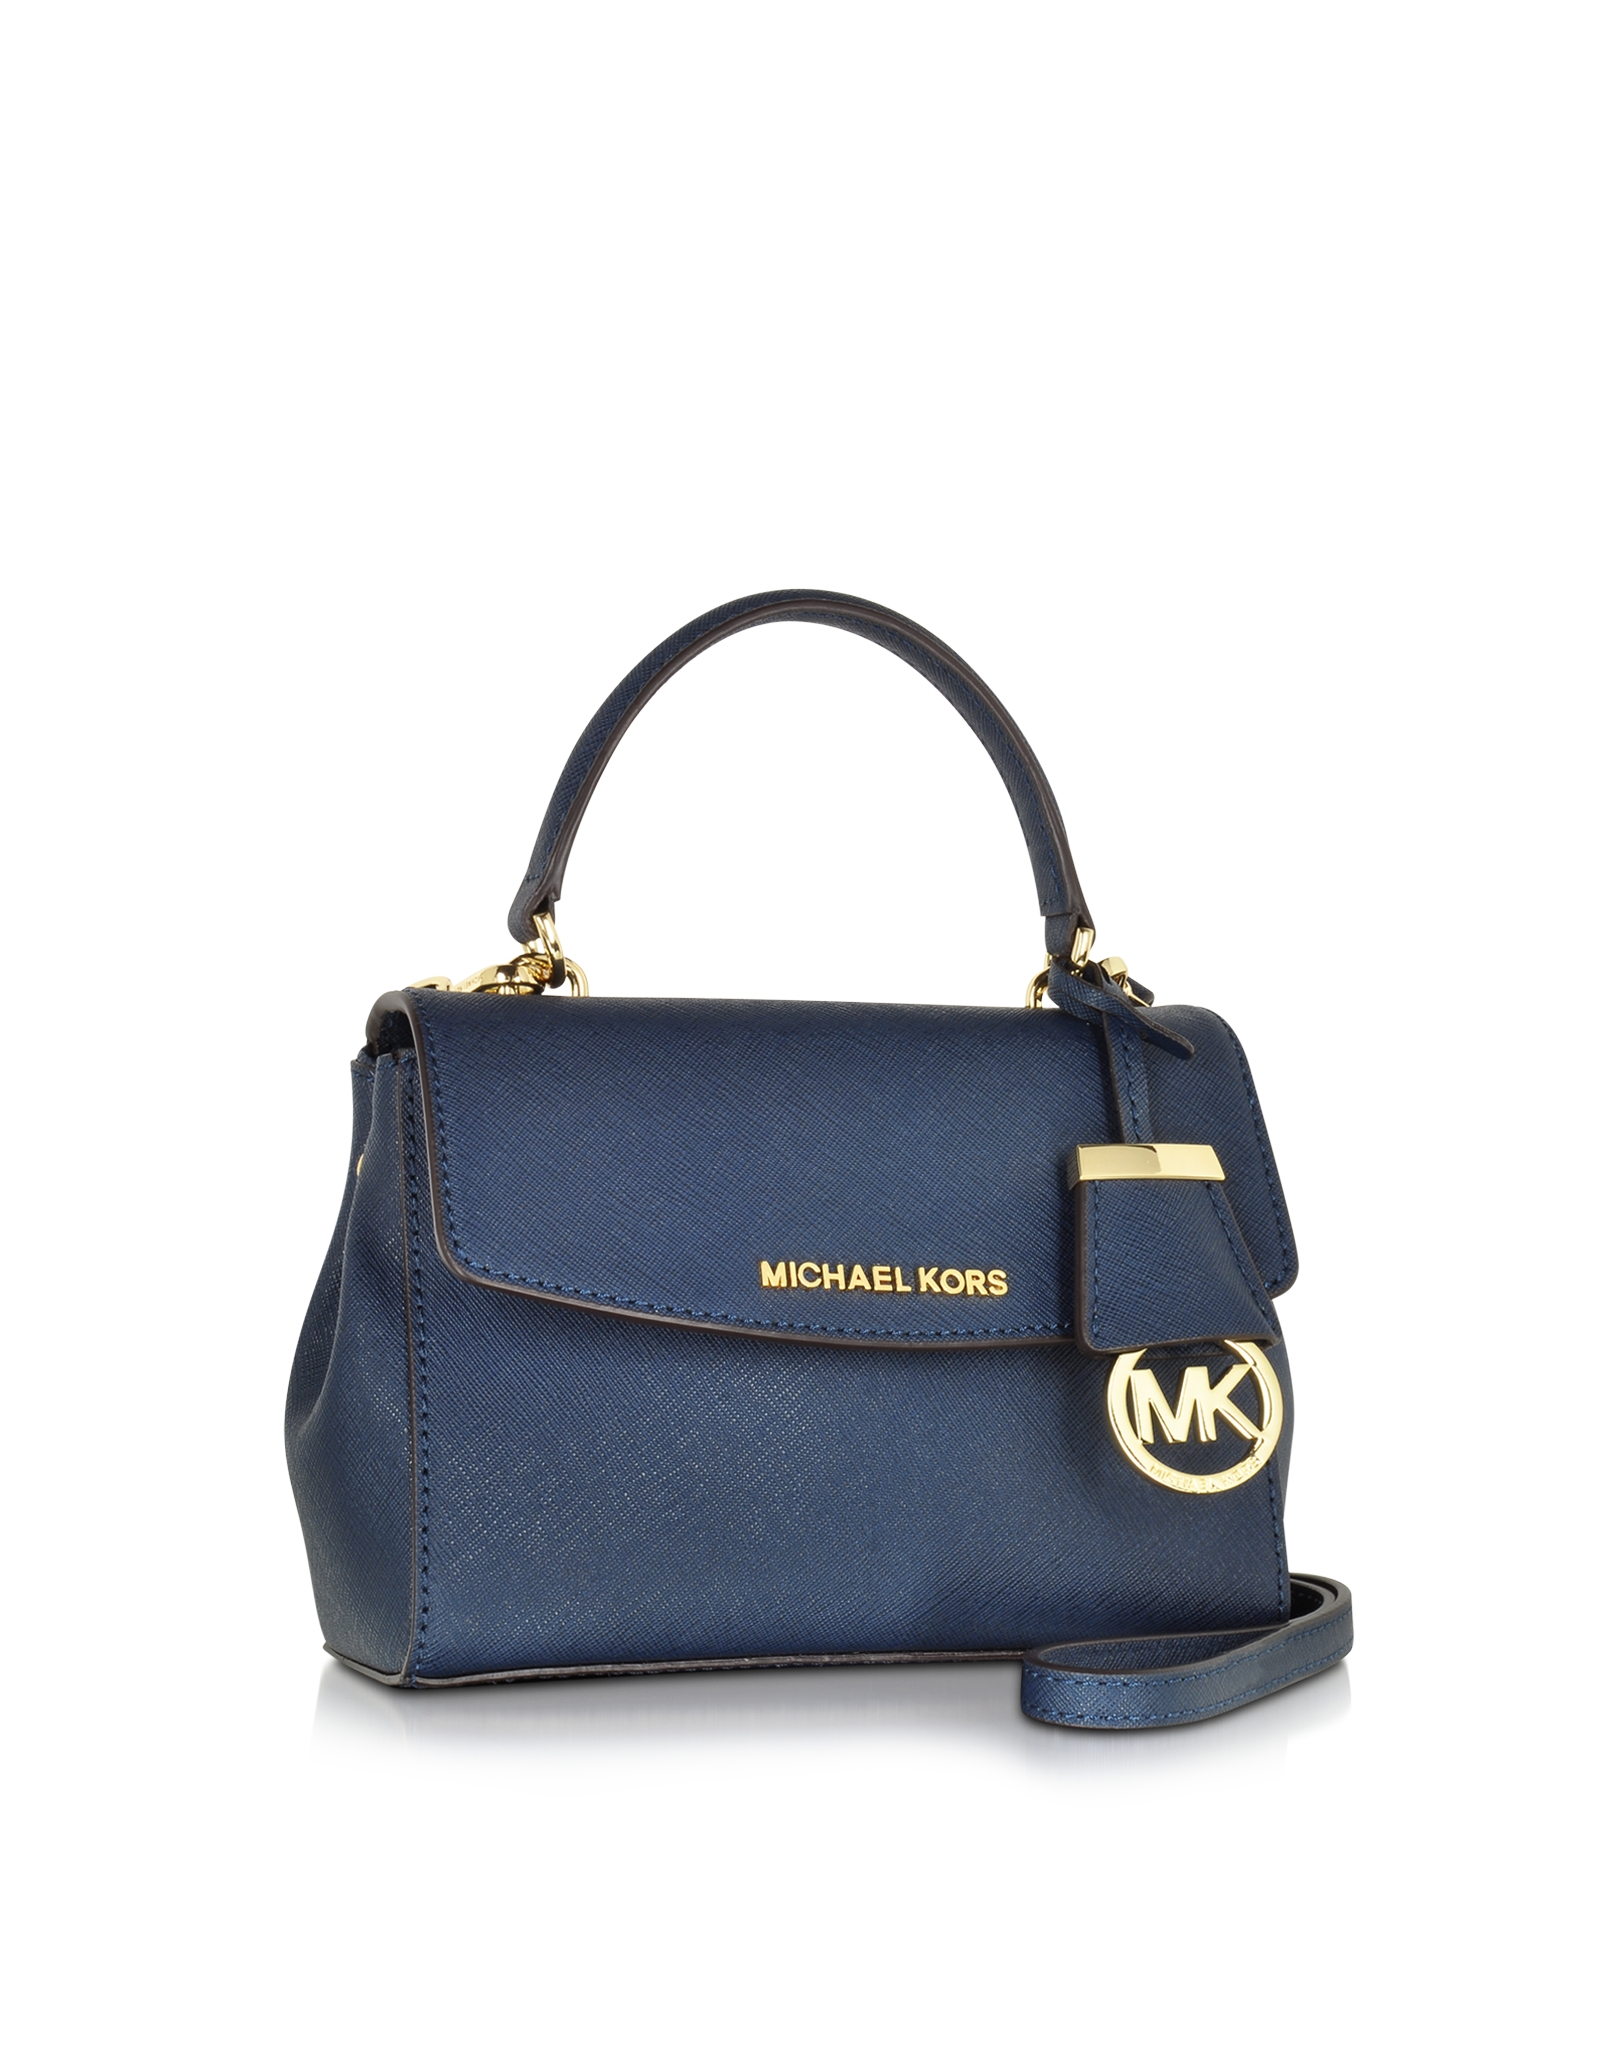 438aff099a50 Extra Small Leather Crossbody Bag. Michael Kors Ava Extra Small Saffiano ...